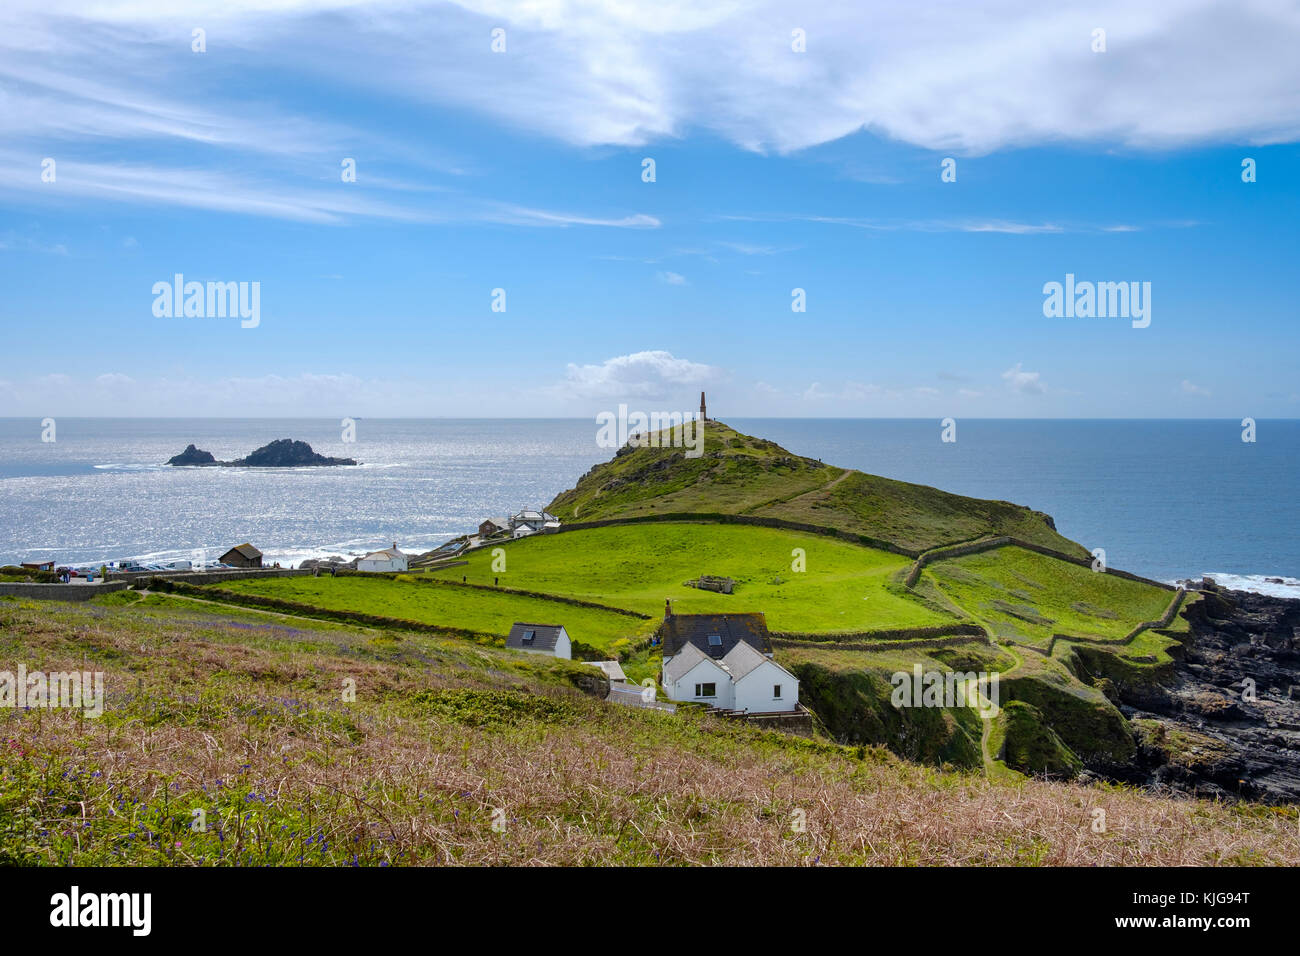 Cape Cornwall, hinten die Inseln The Brisons,  bei St Just in Penwith, Cornwall, England, Großbritannien Stock Photo